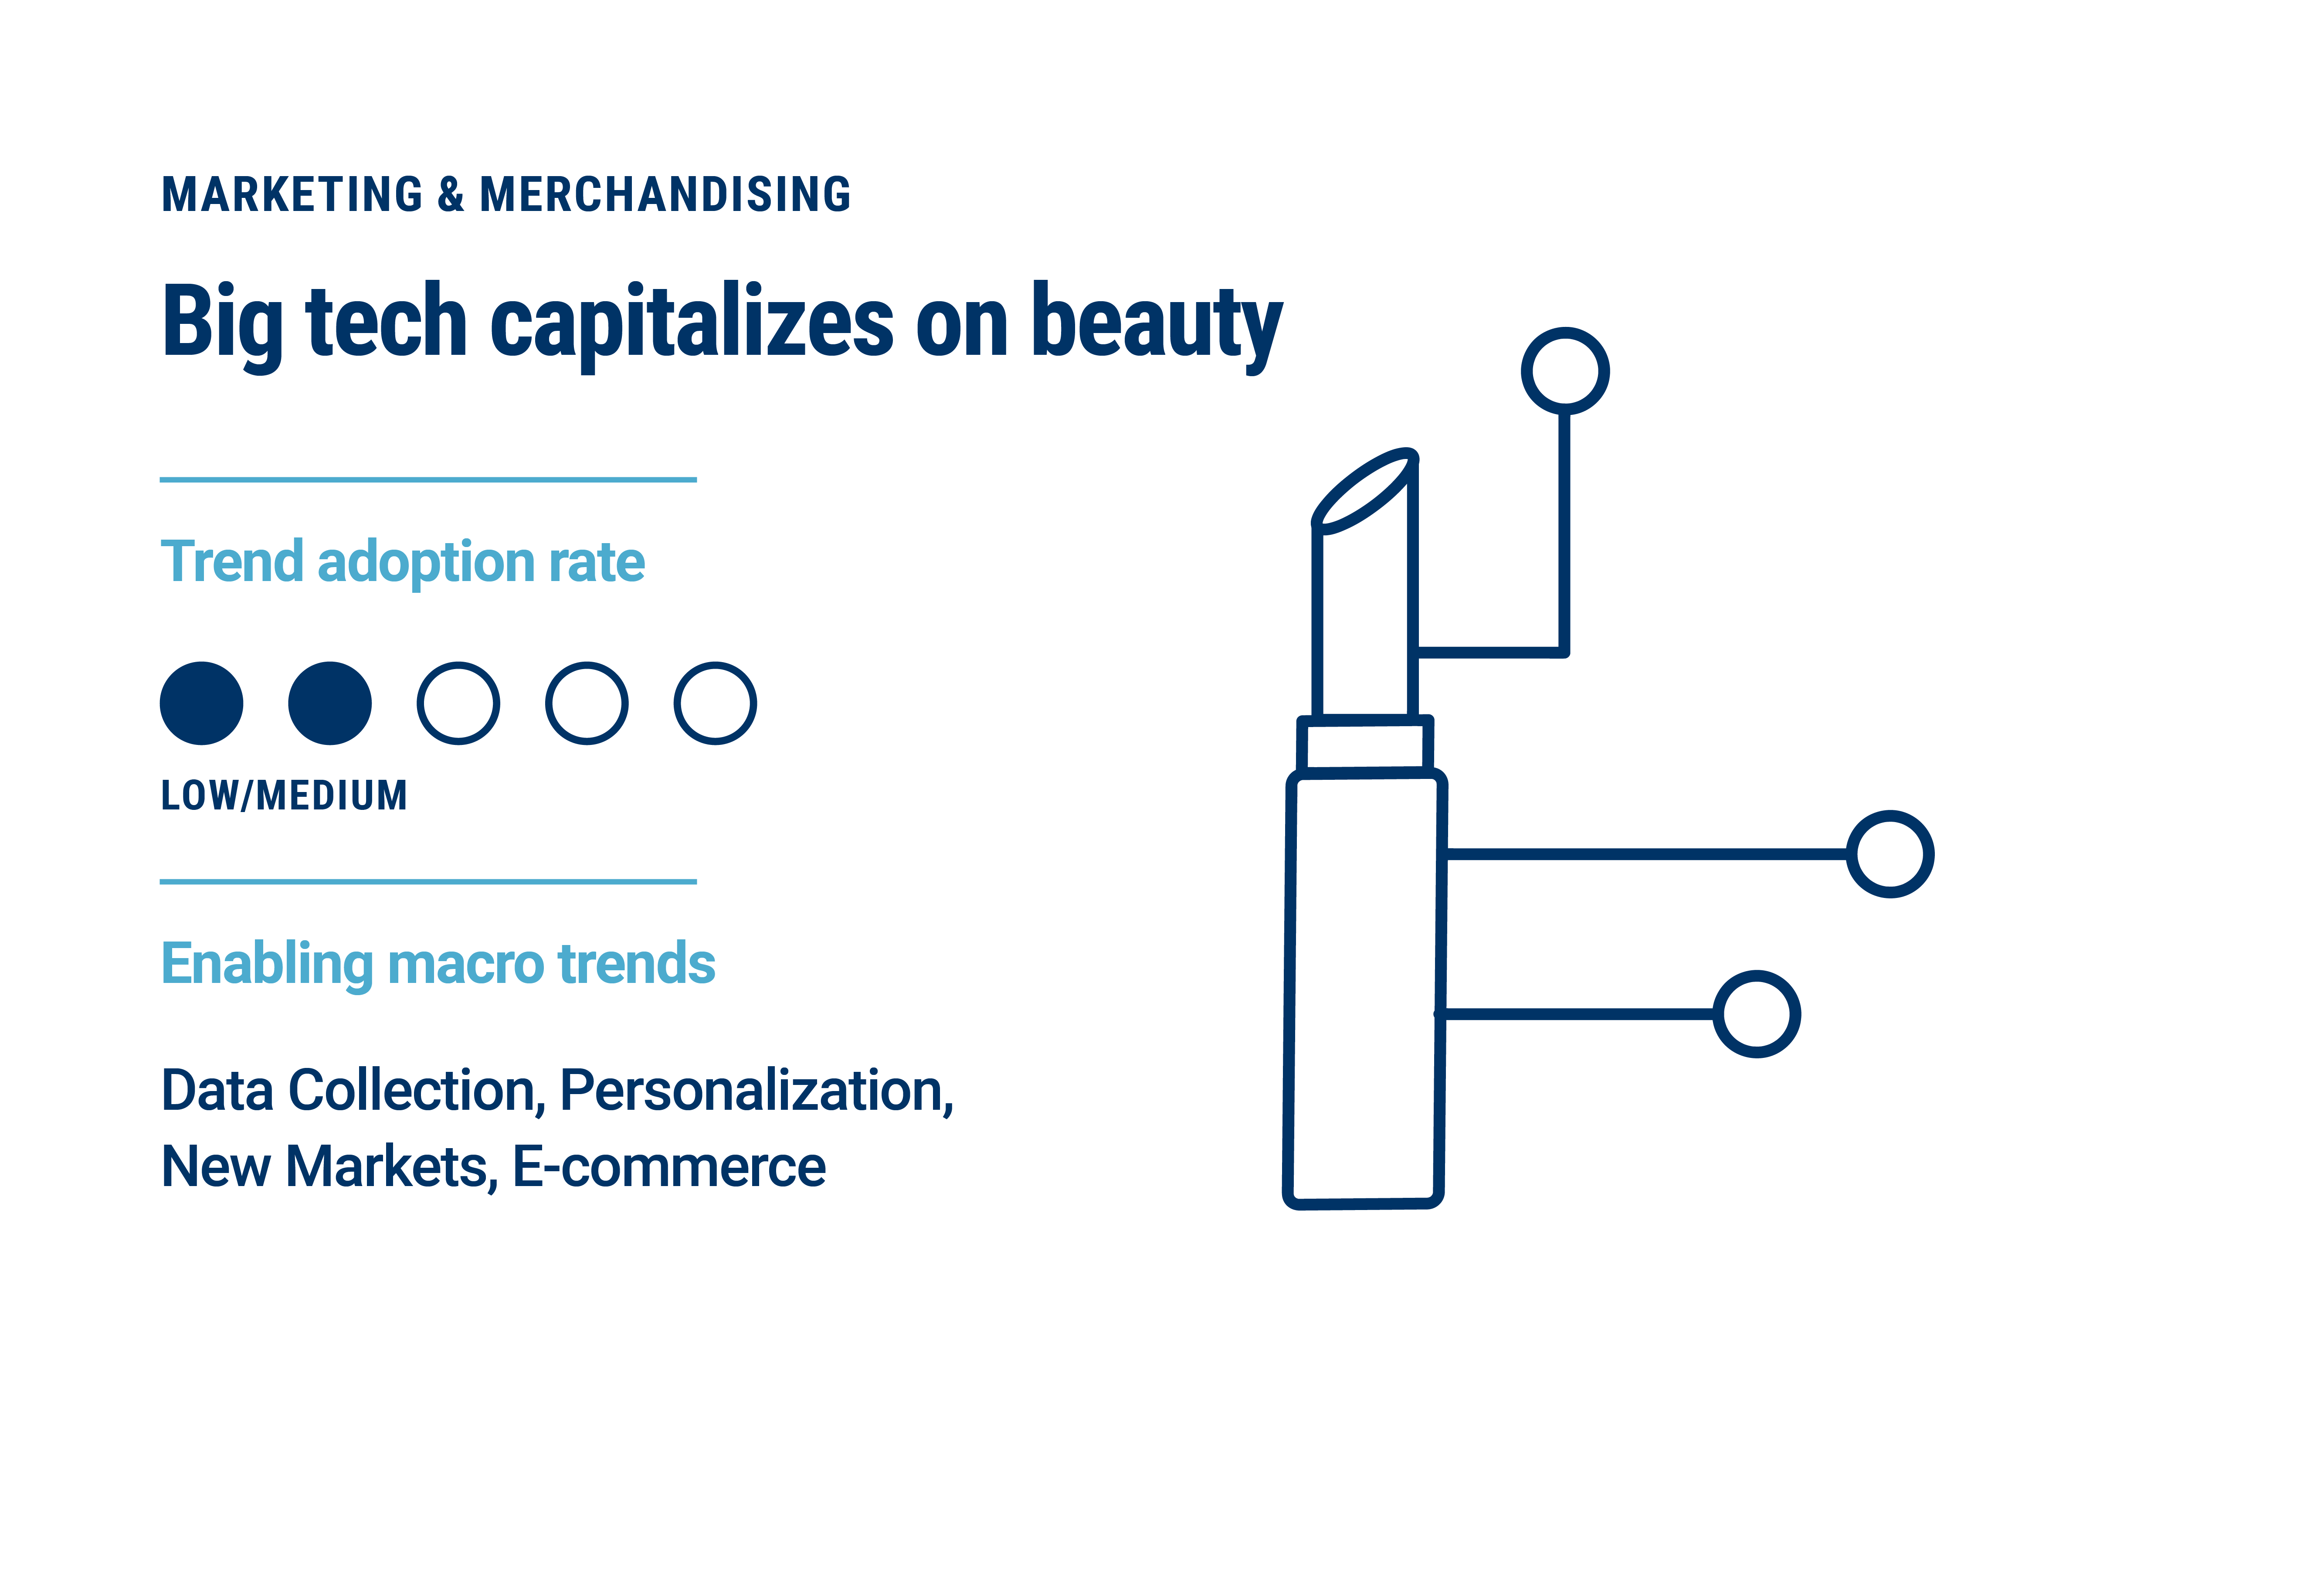 A beauty industry trend that hasn't been widely adopted is big tech capitalizes on beauty